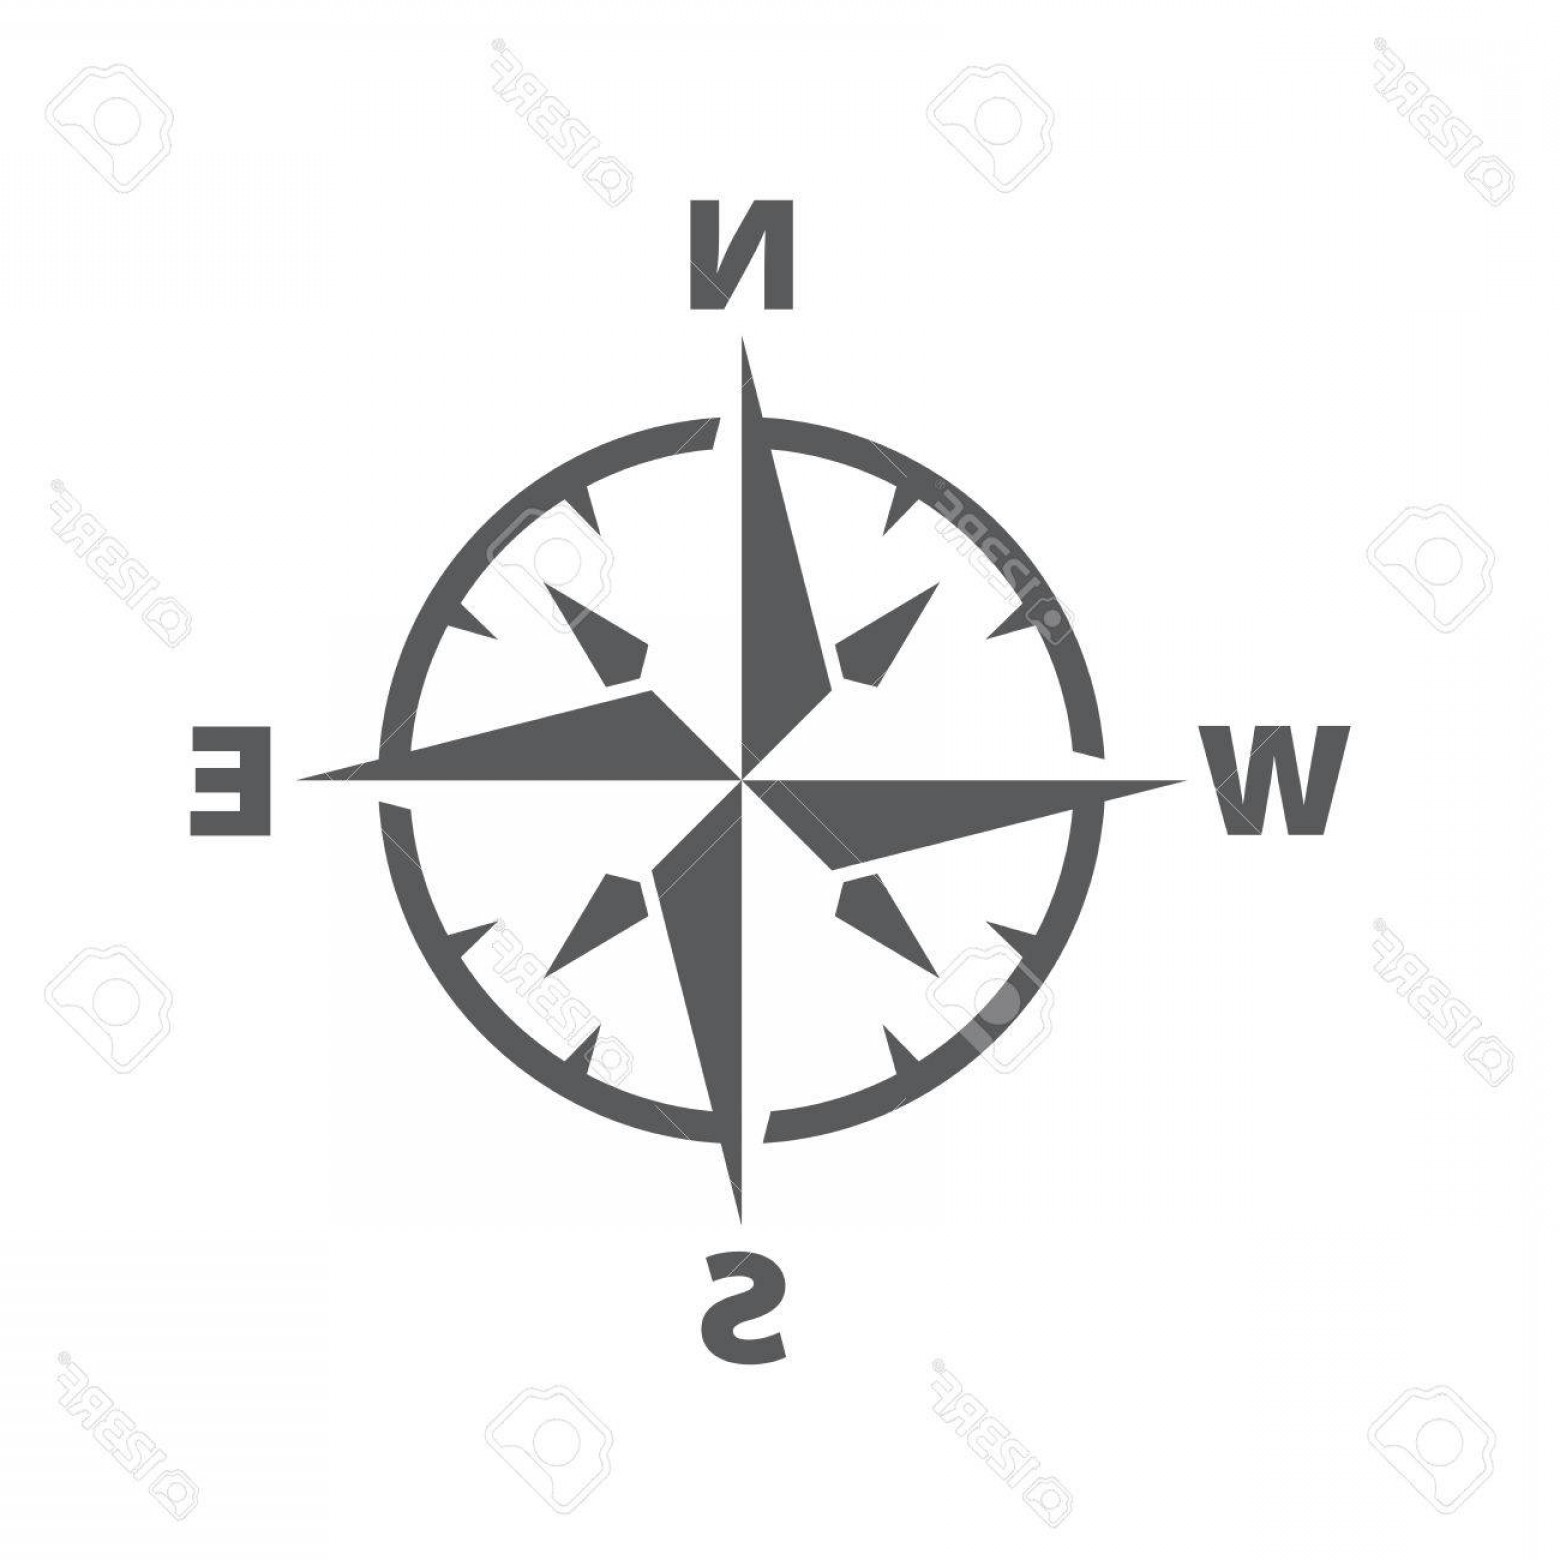 Simple Compass Vector Black And White: Photostock Vector Vector Dark Grey Compass Windrose Icon With A Simple Modern Look